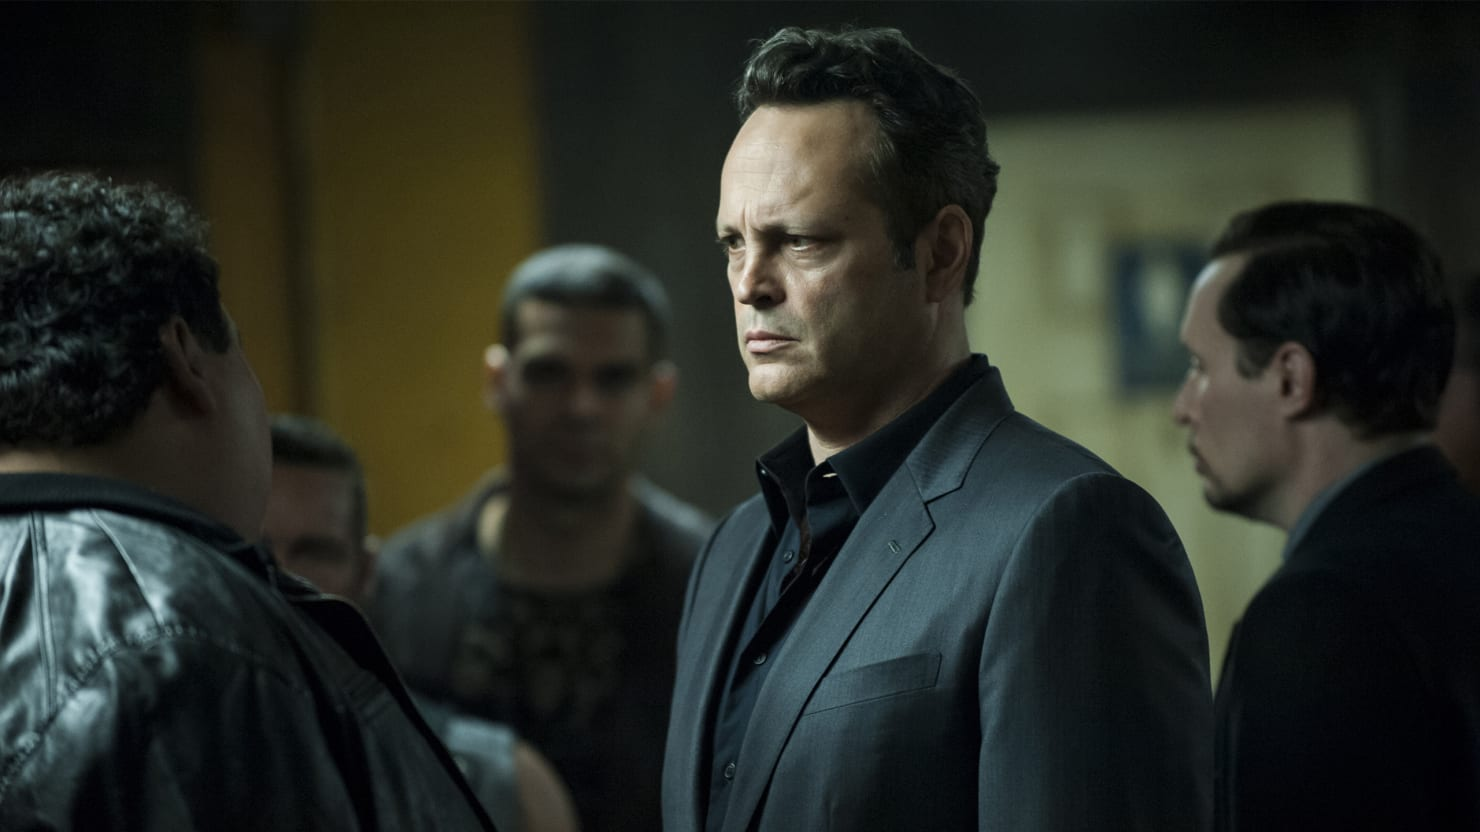 'True Detective': The Most Libertarian Show on TV